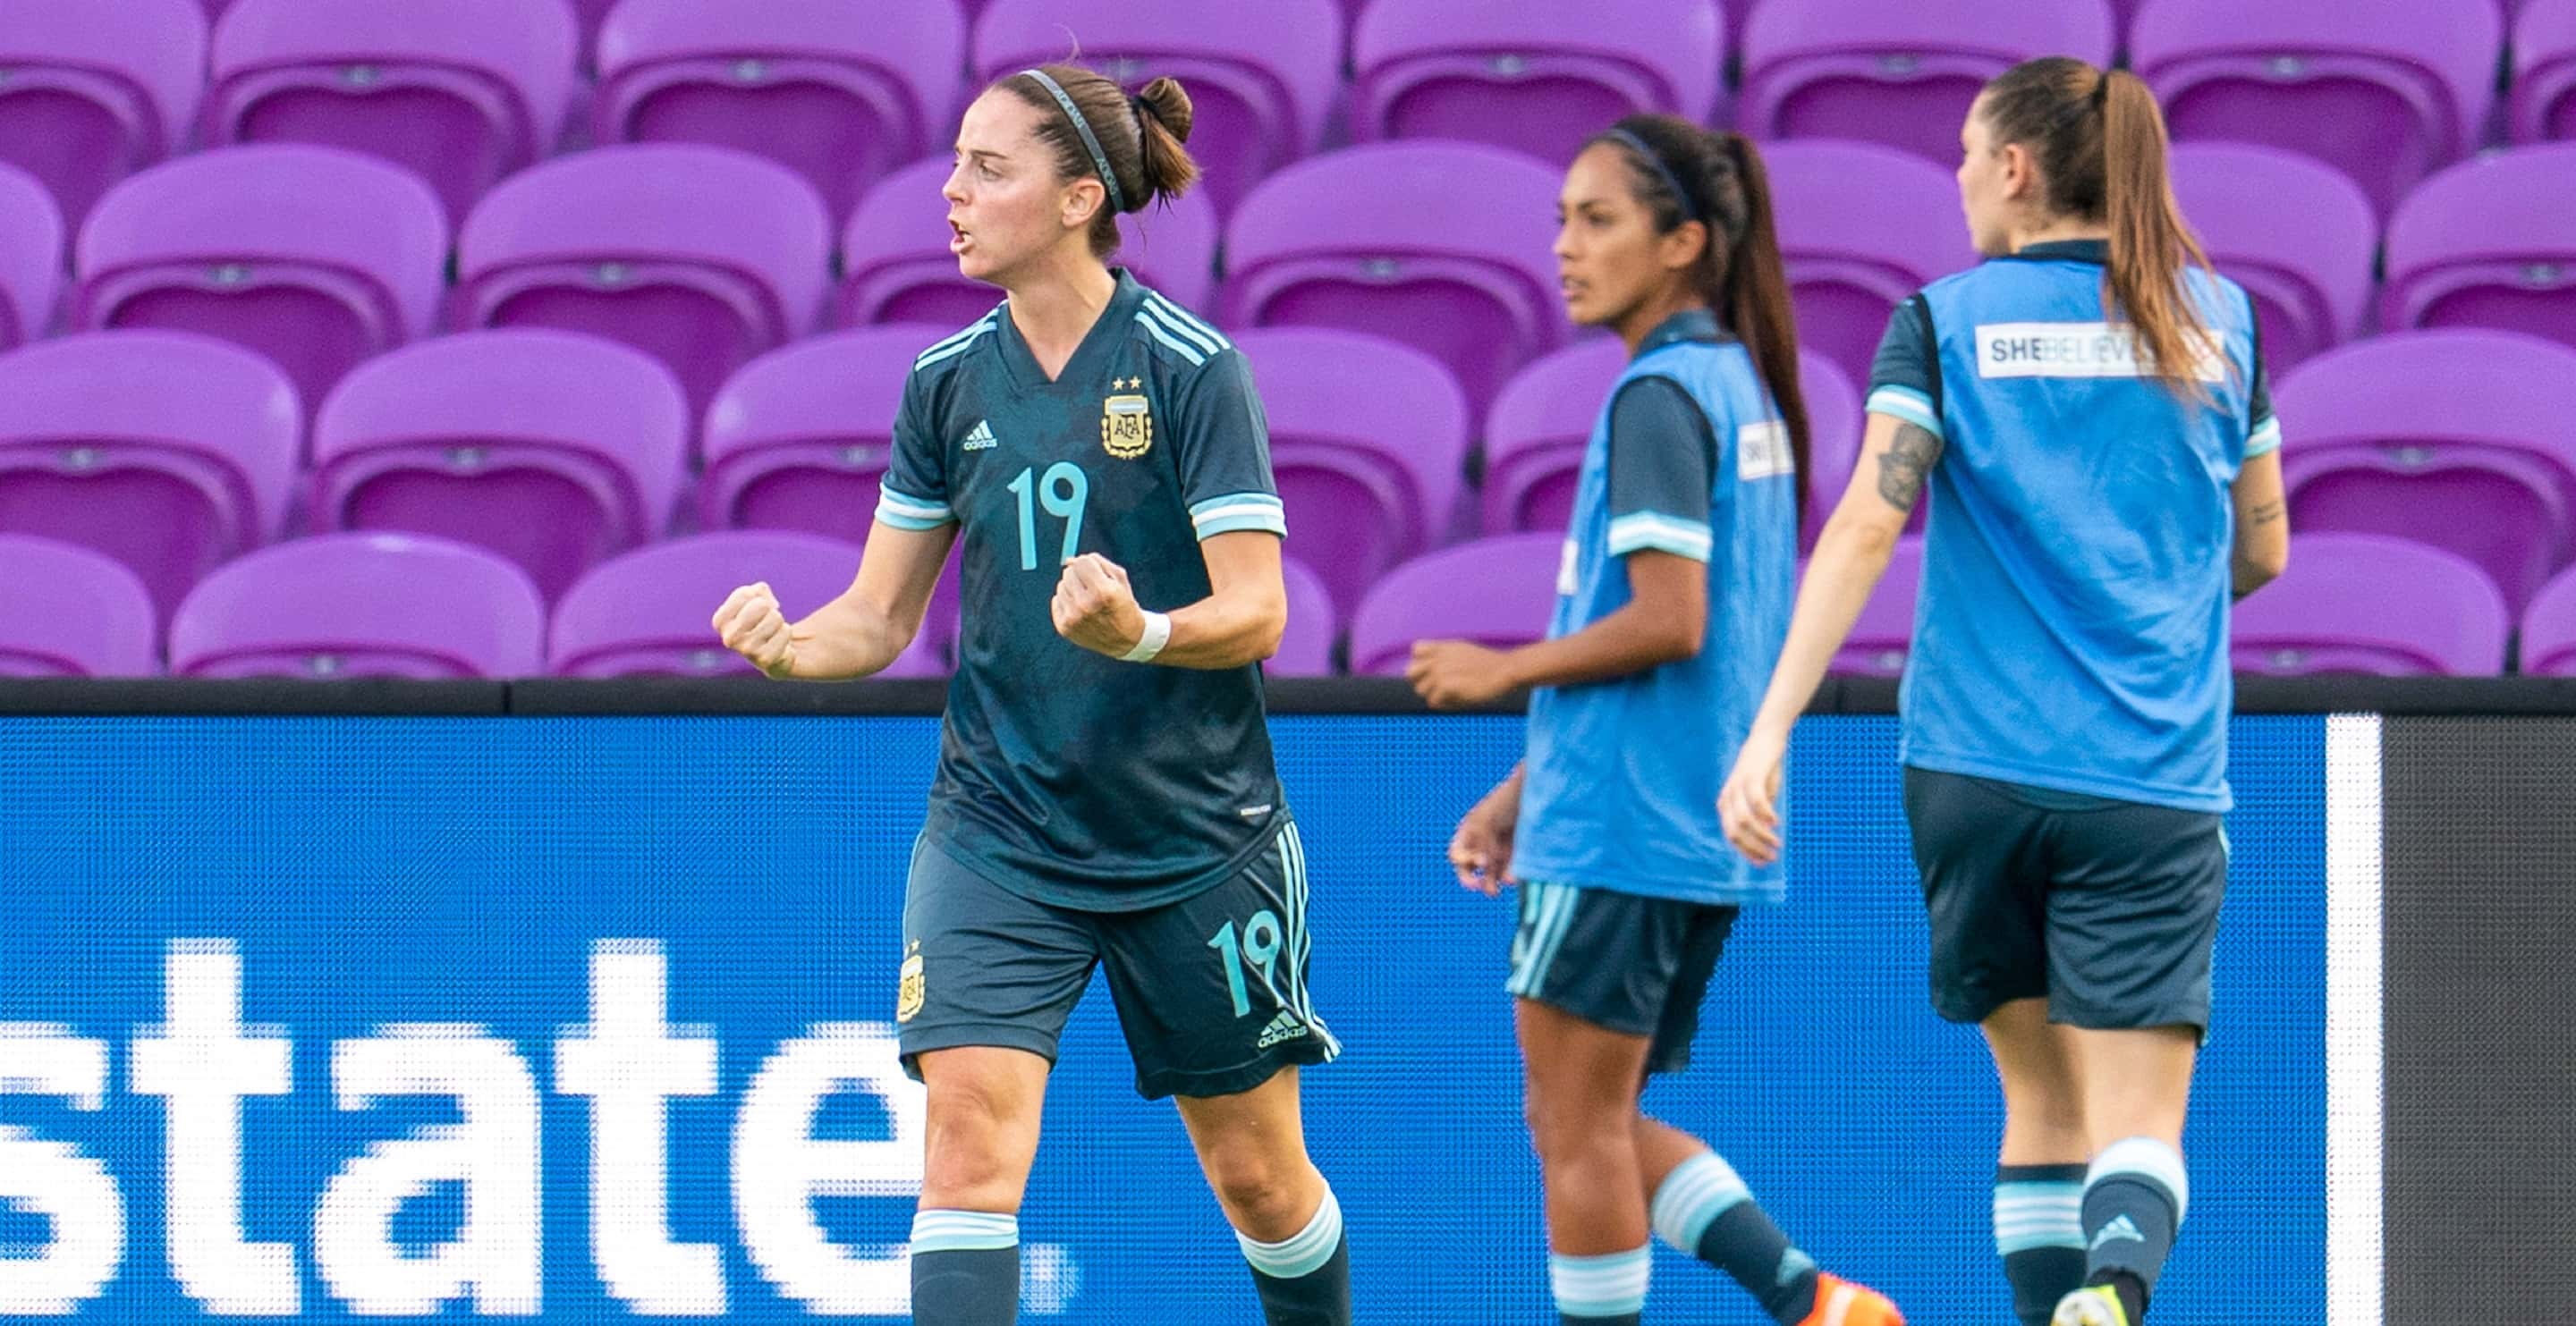 2021 Shebelieves Cup Usa Vs Argentina Match History Preview Five Things To Know